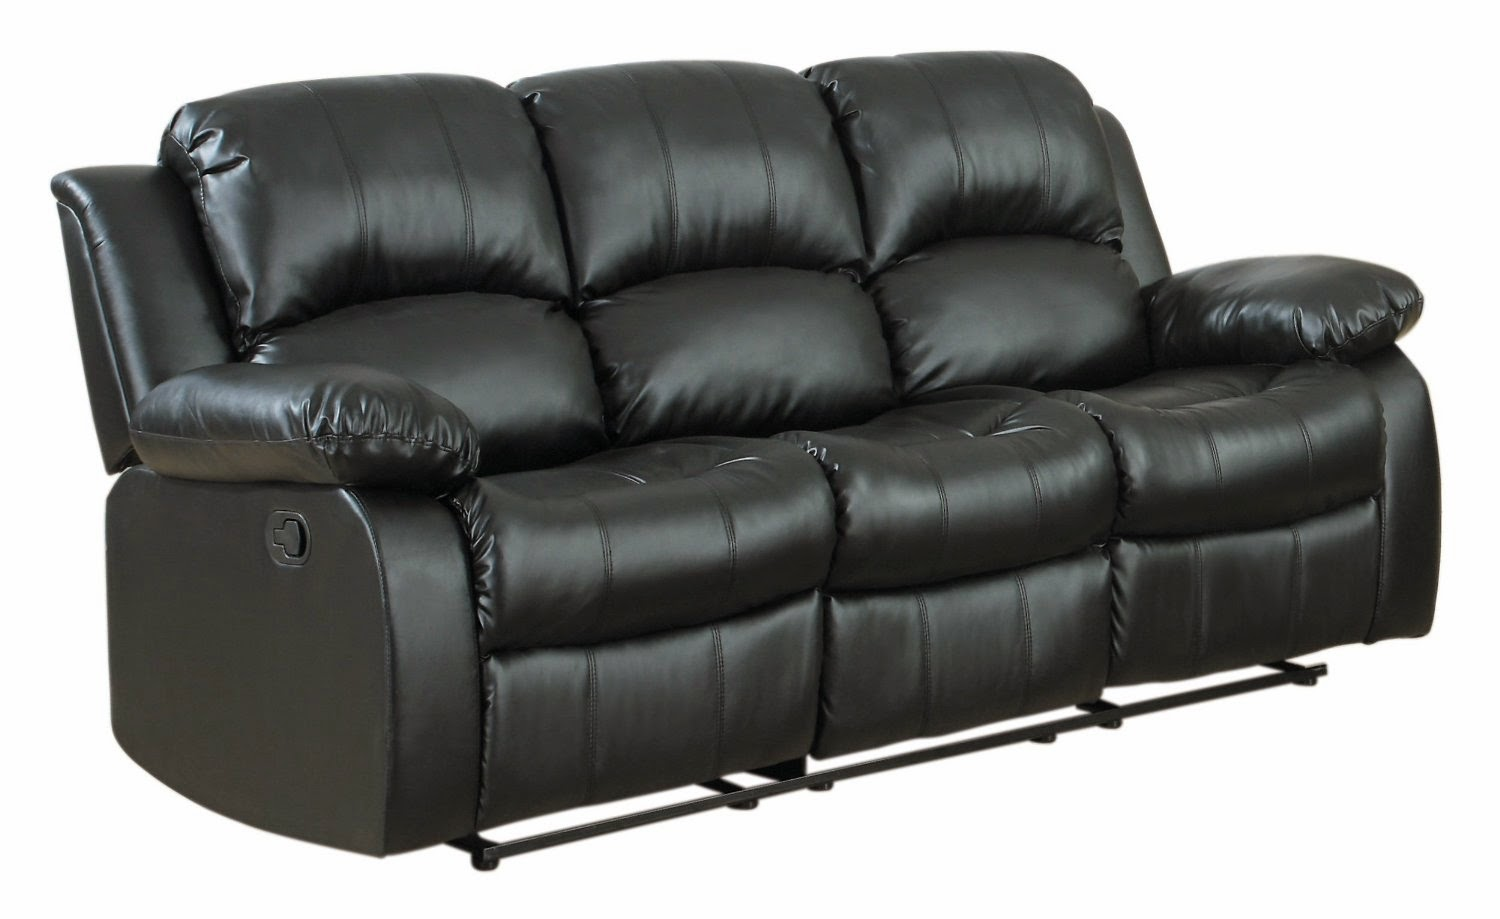 Best Leather Reclining Sofa Brands Reviews: 2 Seat Reclining Leather ...